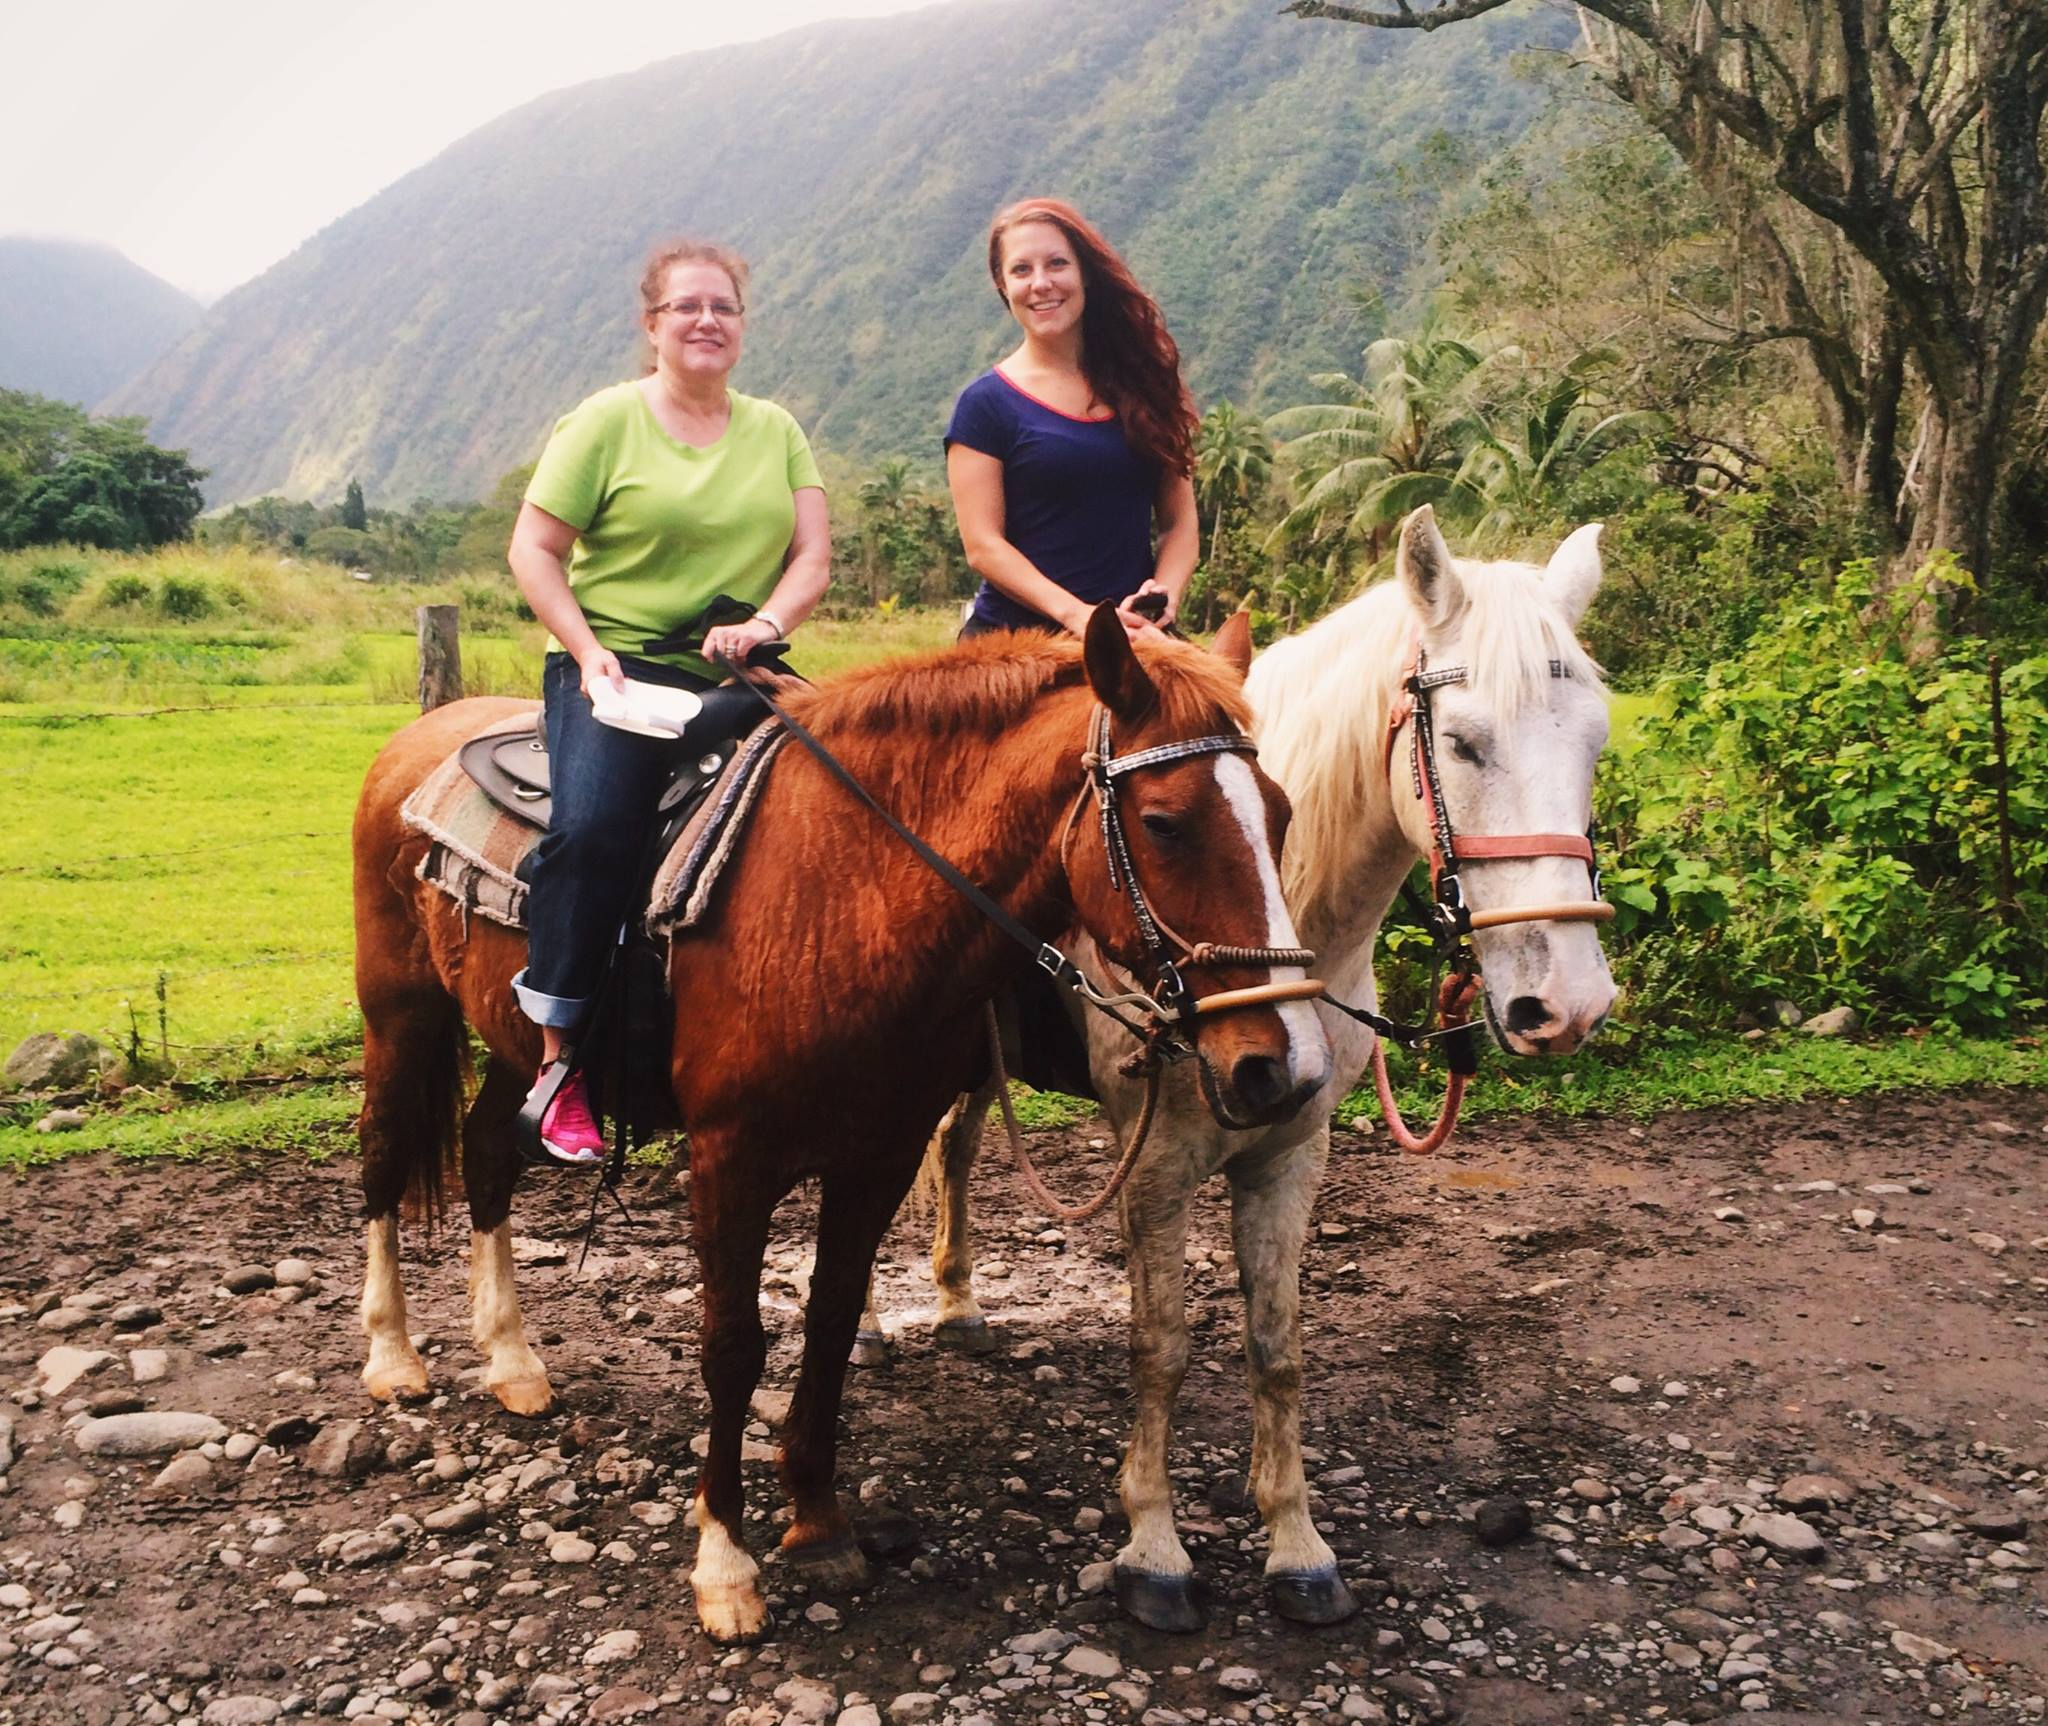 I love to travel! My mom and I riding horses in Waimea